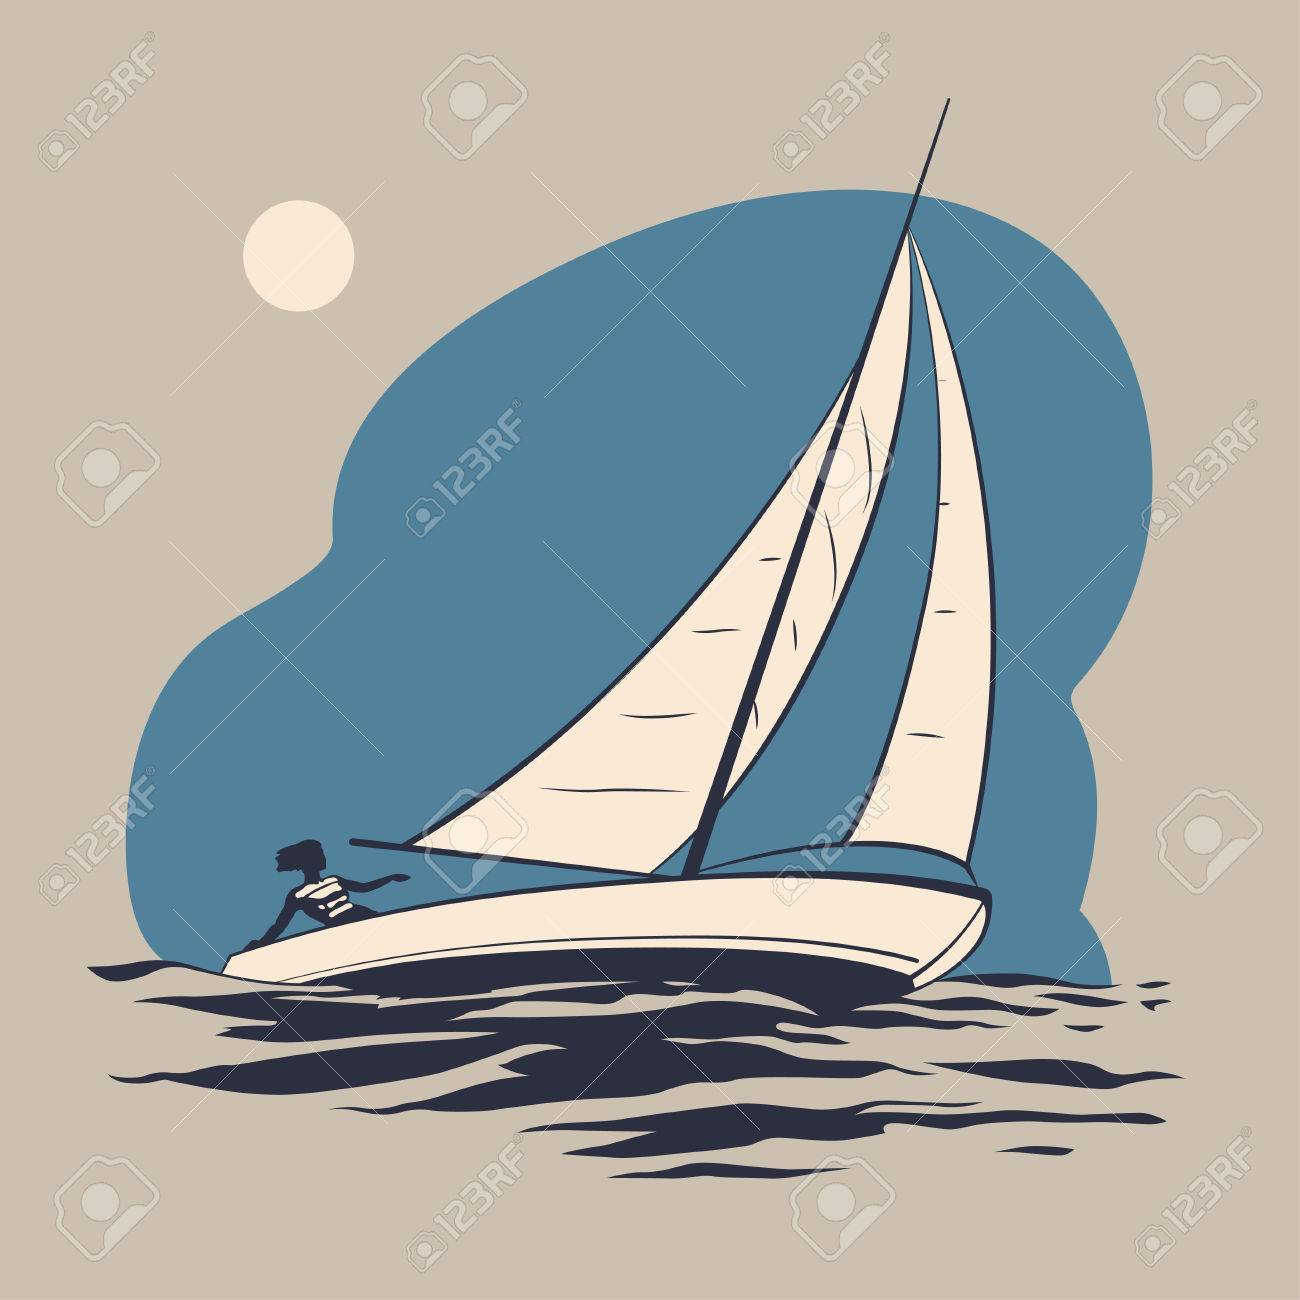 banner stock X free clip art. Yacht clipart wave boat